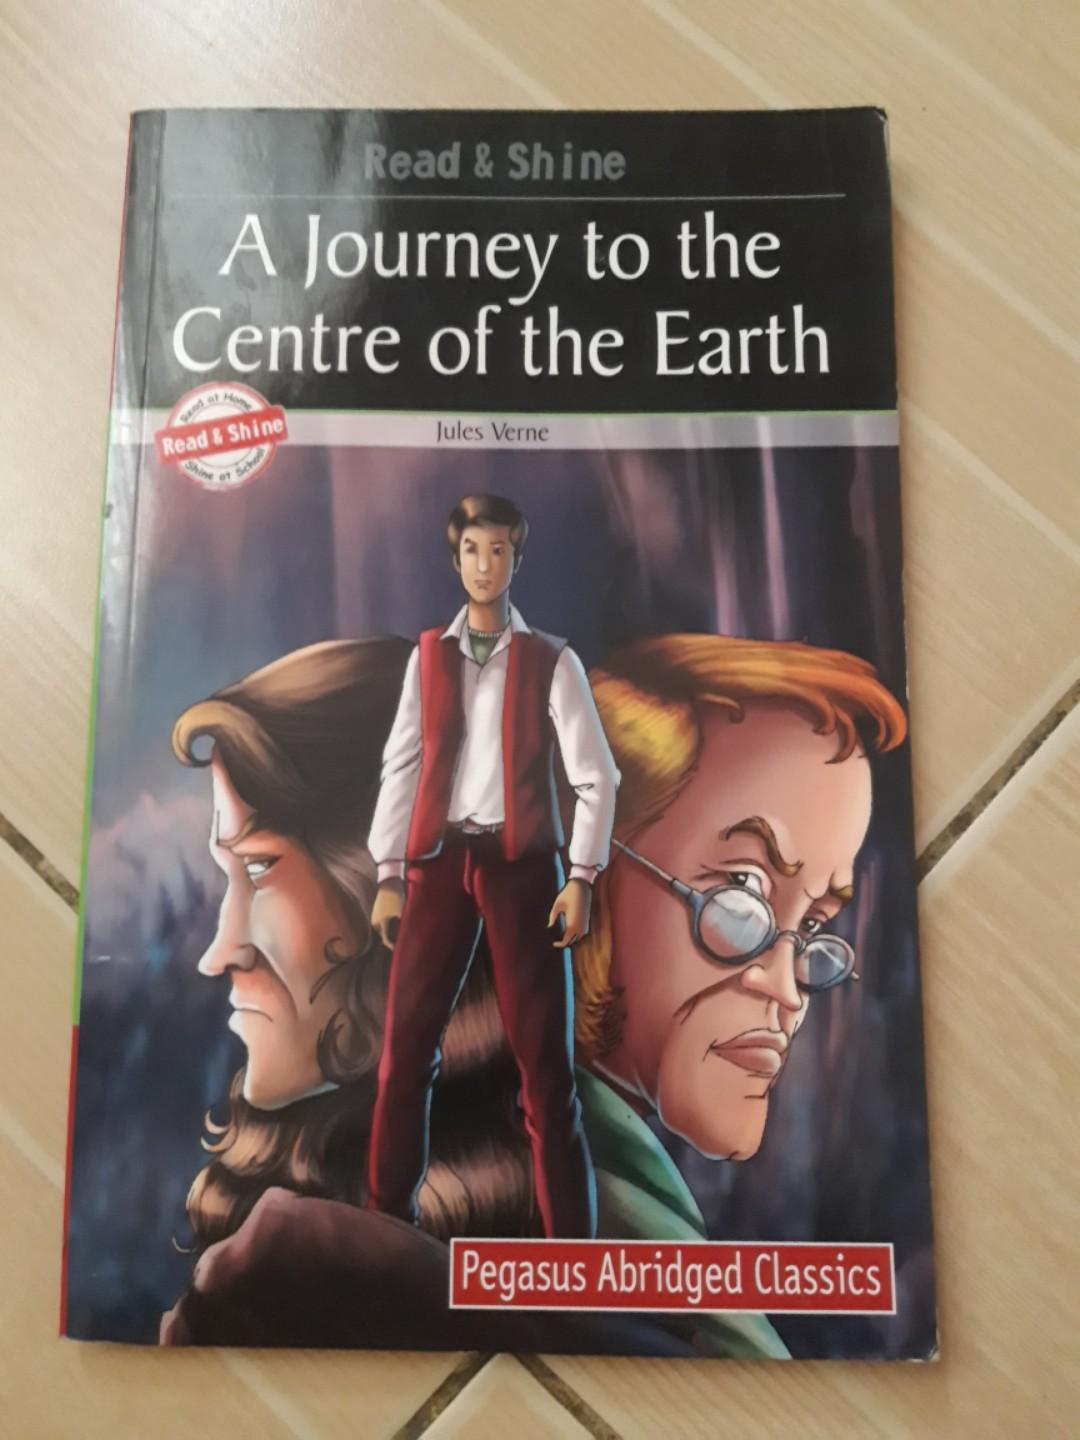 BOOK BUNDLE (Tall story, The time machine, A journey to the centre of the earth)